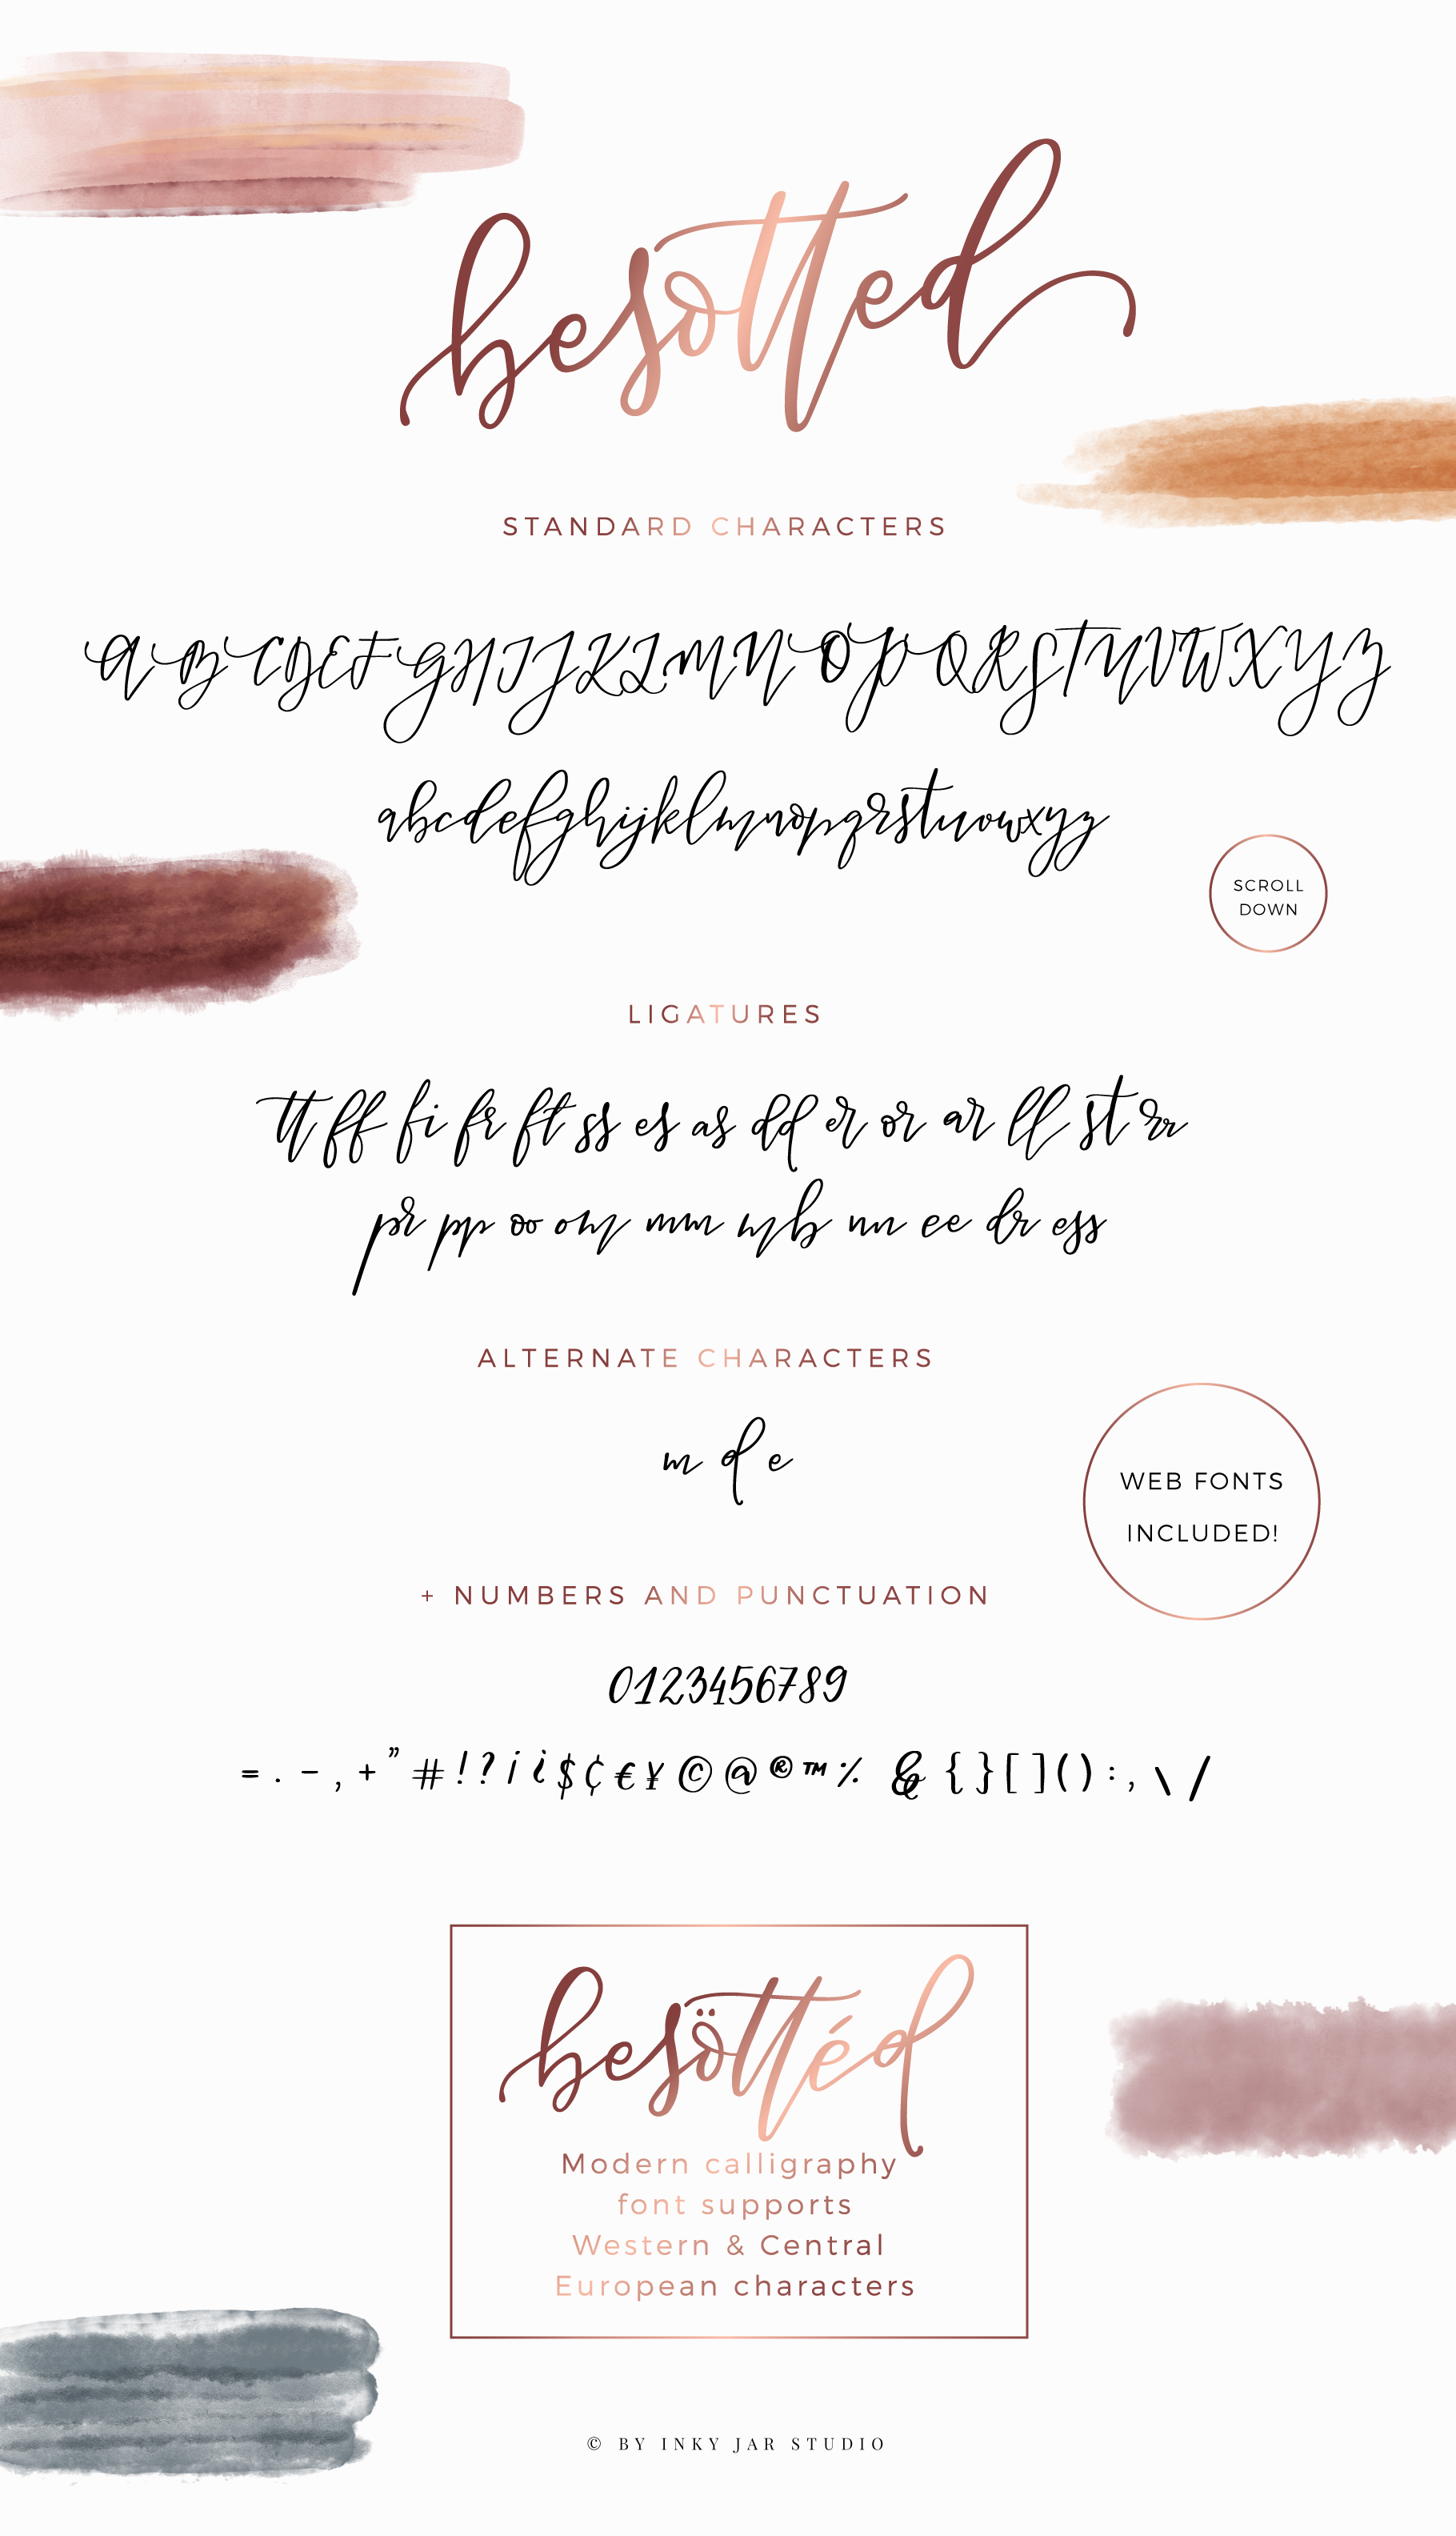 Besotted Modern Calligraphy Script example image 5